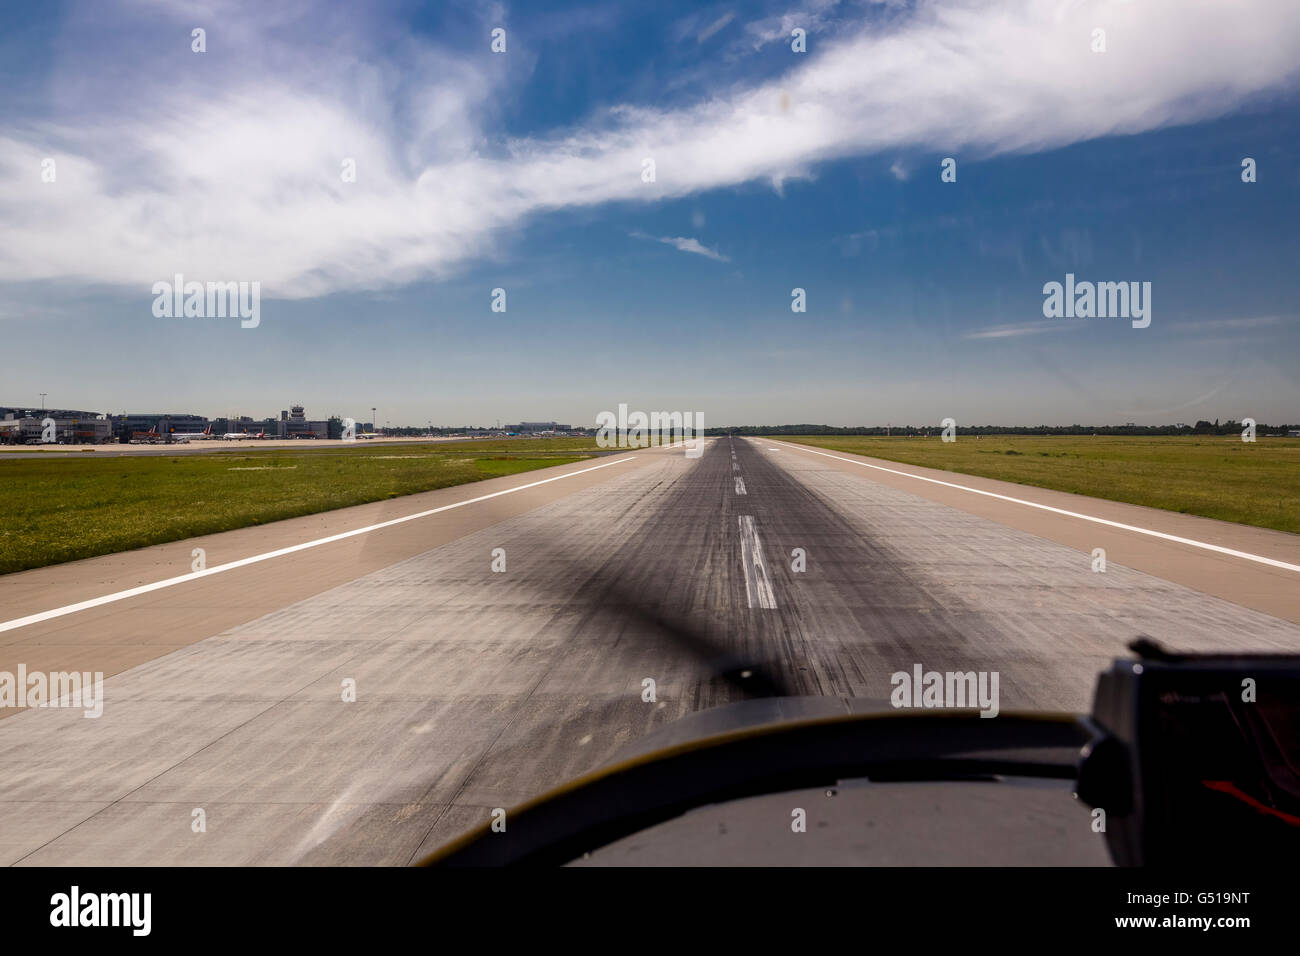 Aerial view, approaching the Dusseldorf airport, approach, on the 23L in a small aircraft, Dusseldorf, Rhineland, - Stock Image